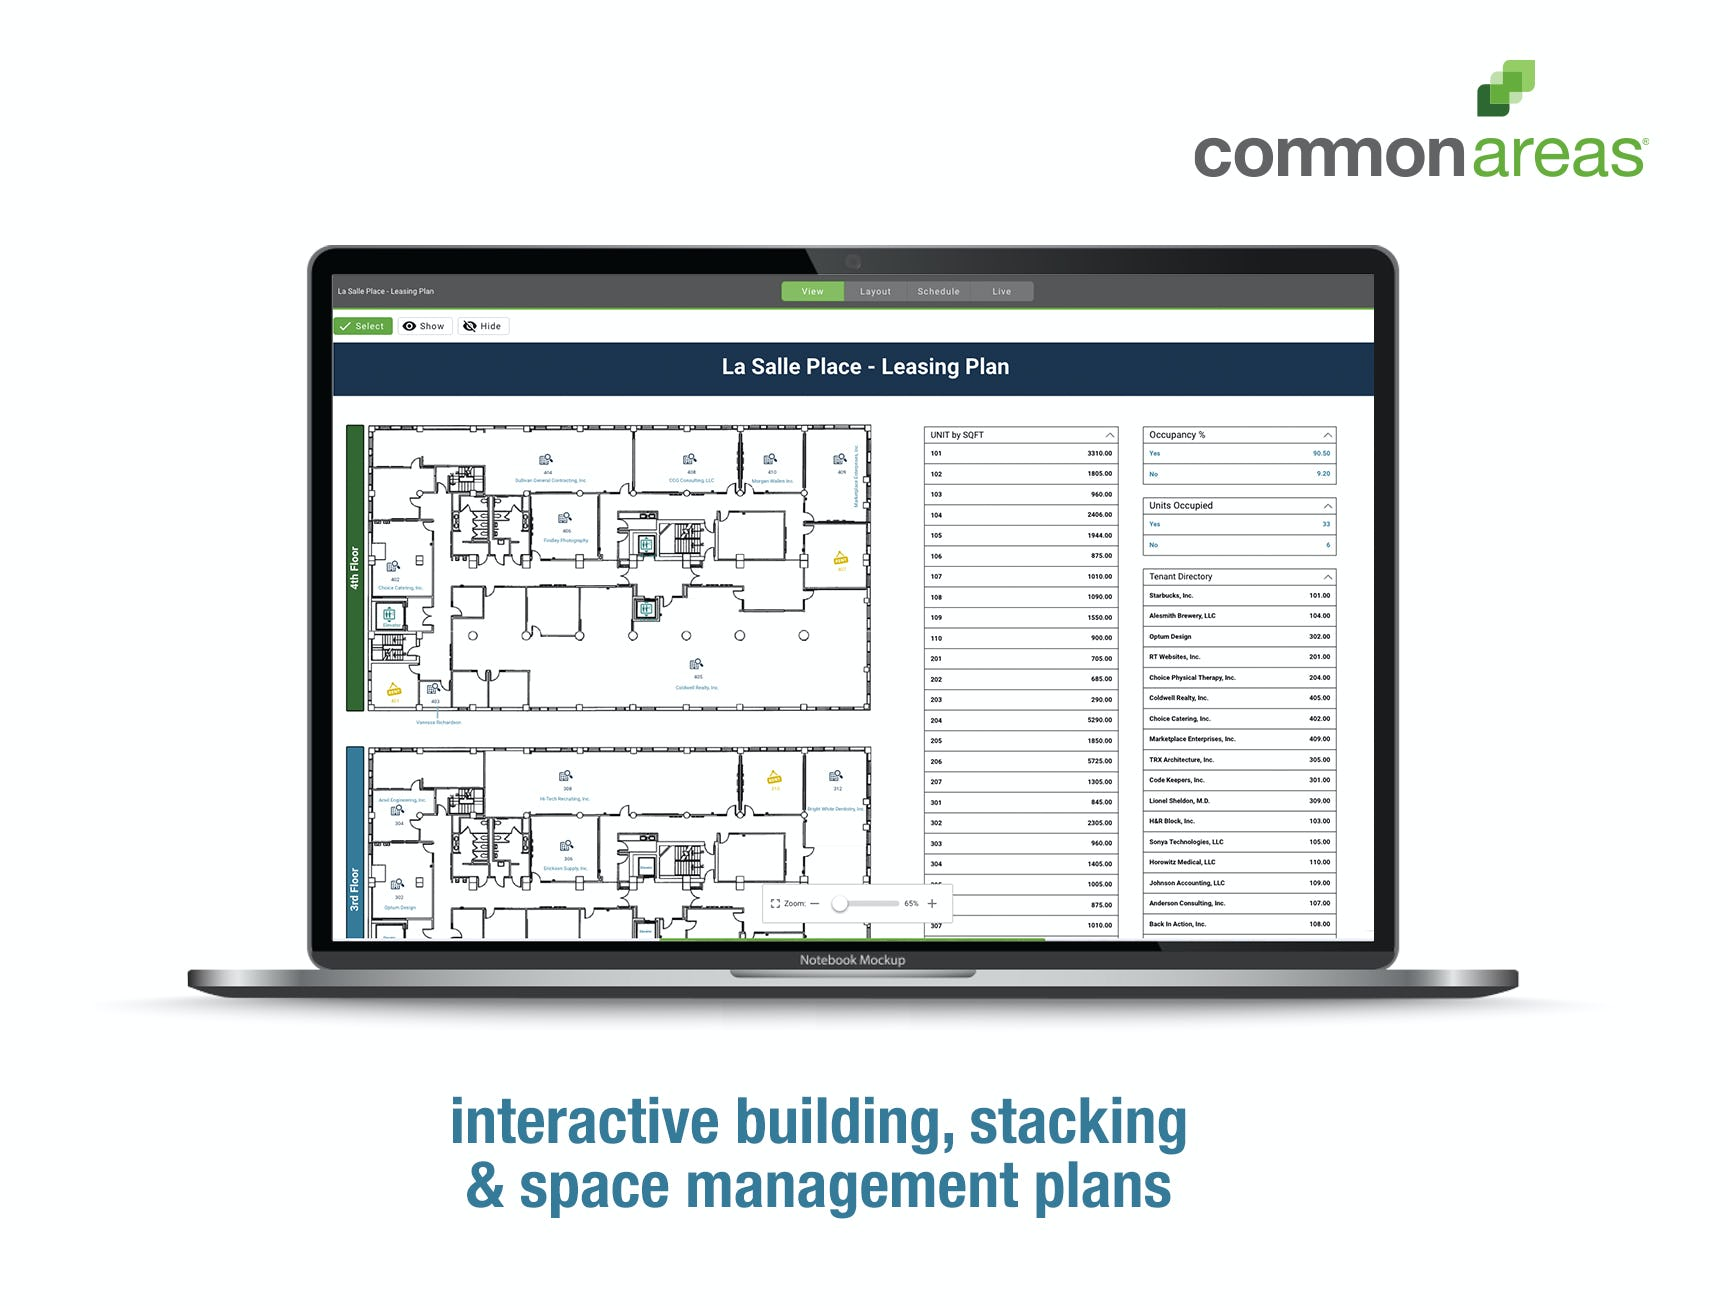 Common Areas Software - Visualize and interact with your plans more effectively. Using data collected during design and construction, tenant leasing, vendor management, and routine site visits, easily plot everyone and everything on a set of interactive plans.